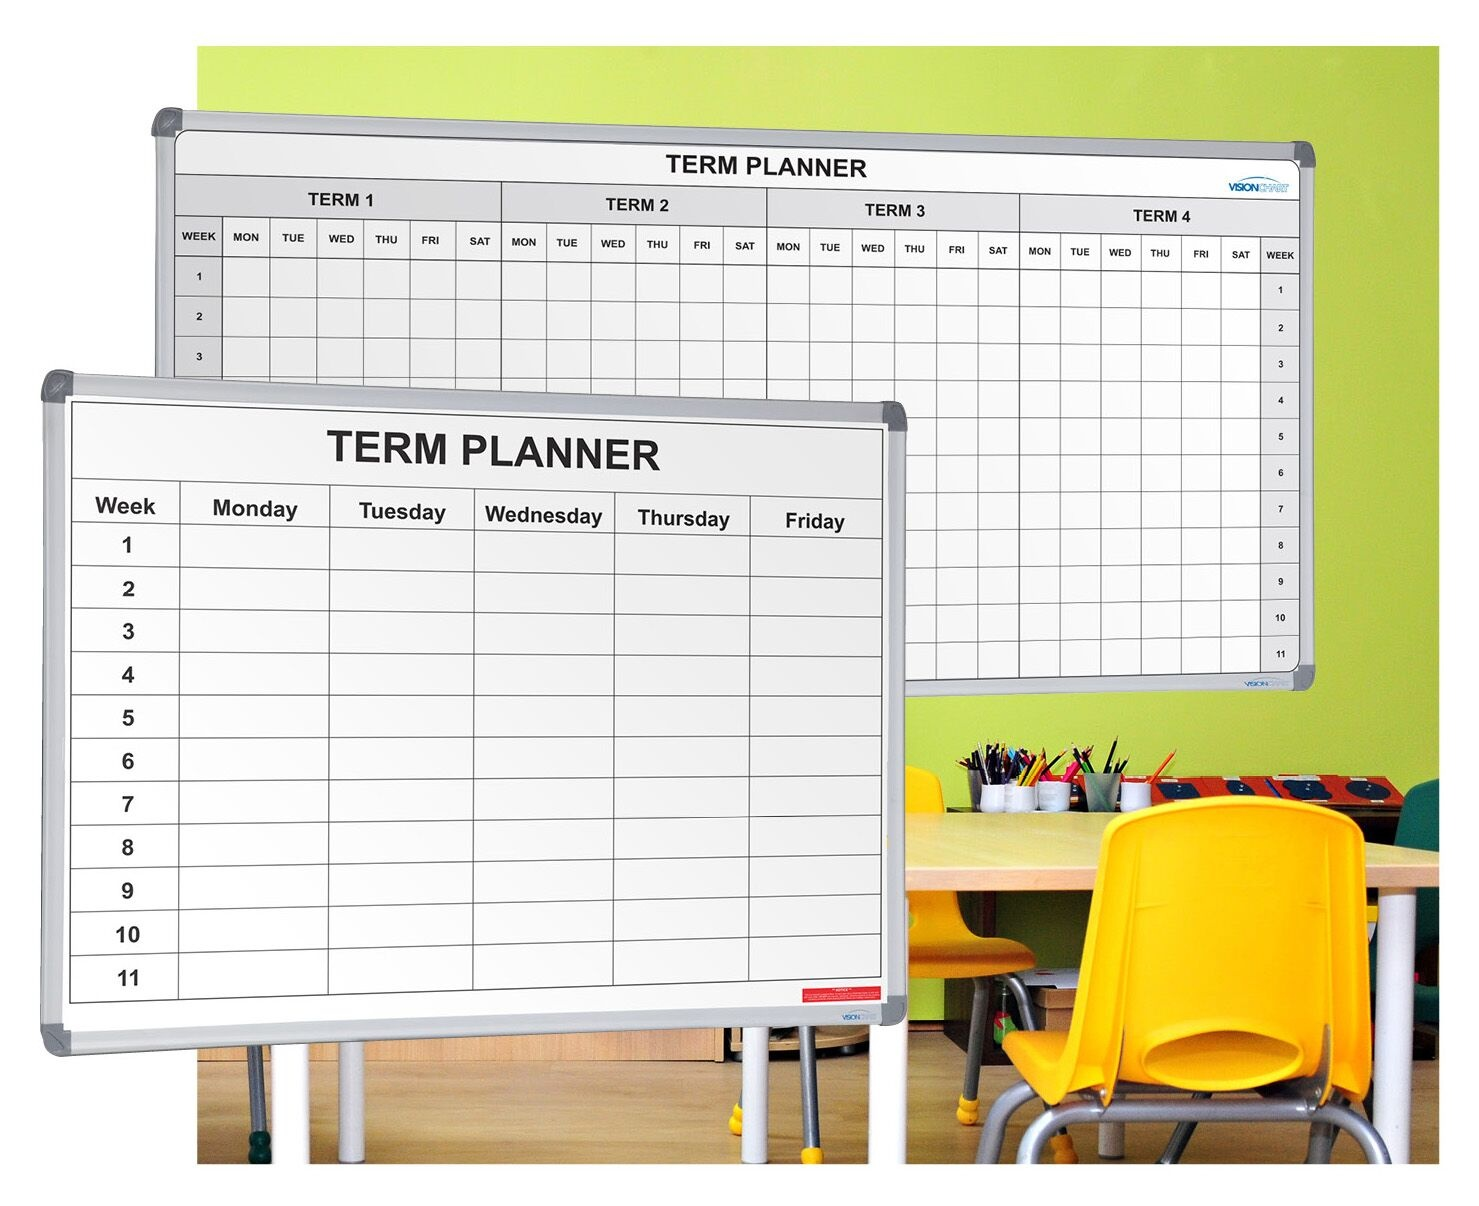 1 Term and 4 Term Planners